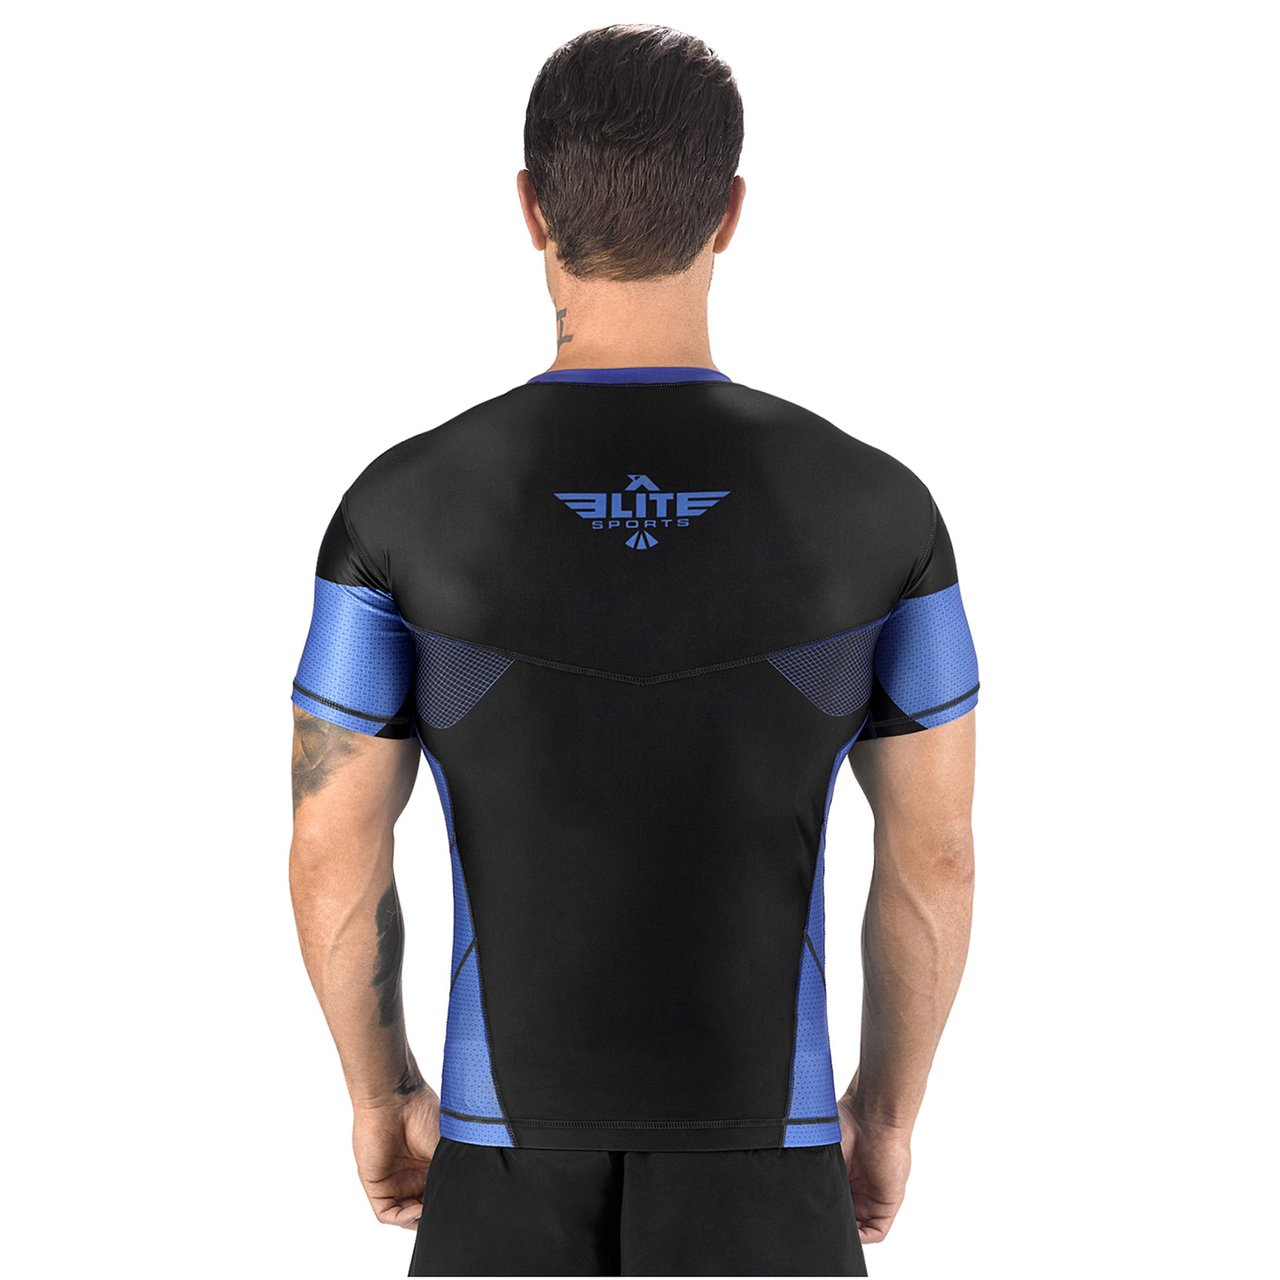 Load image into Gallery viewer, Elite Sports Honey Comb Sublimation Black/Blue Short Sleeve Judo Rash Guard